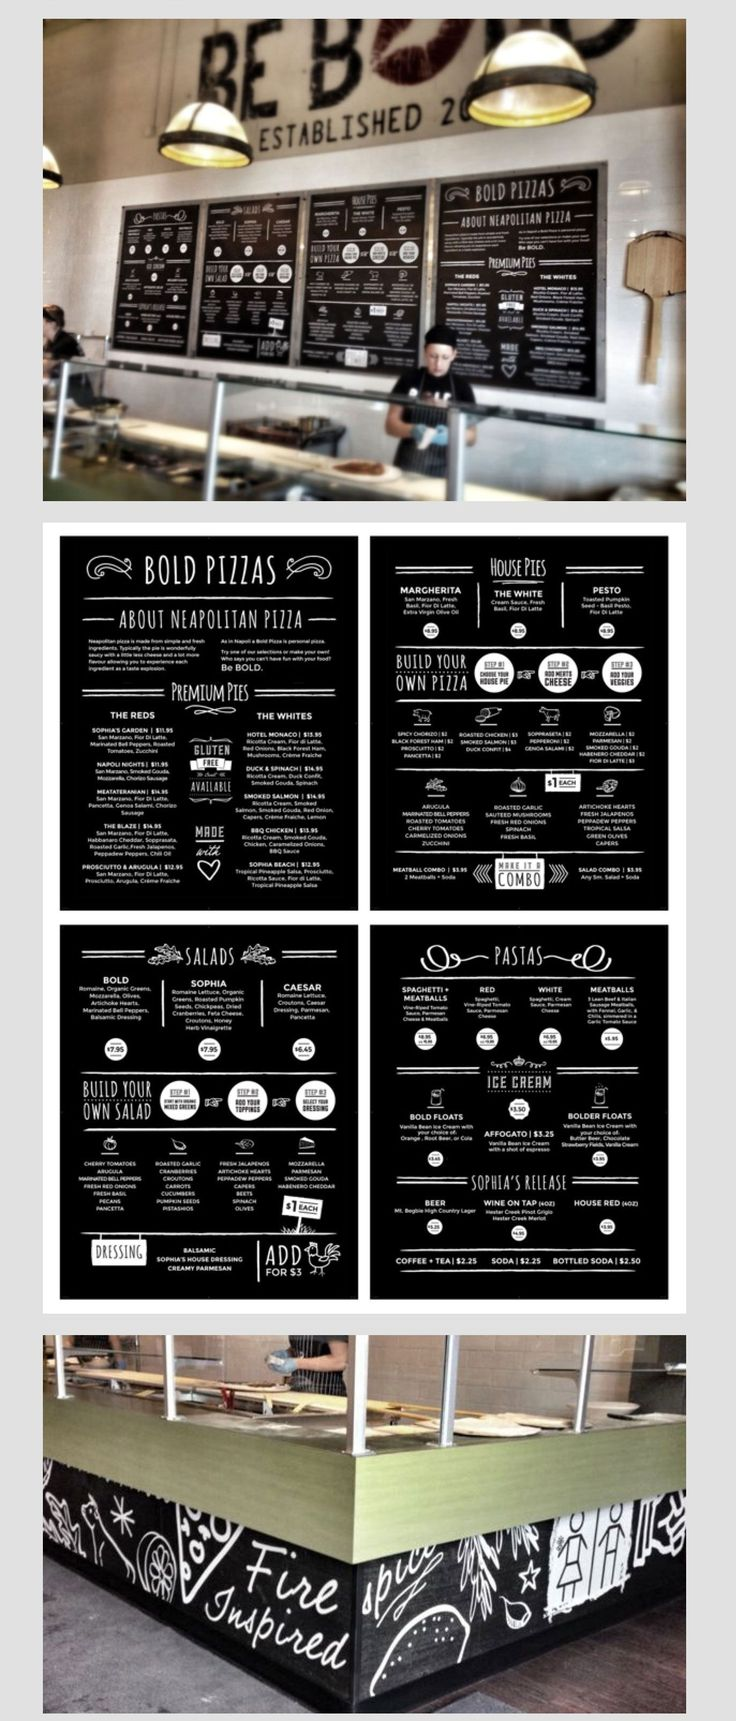 Pizzeria menu and environmental design @studi09creative #graphicdesign See the rest of the project at www.studi09.ca